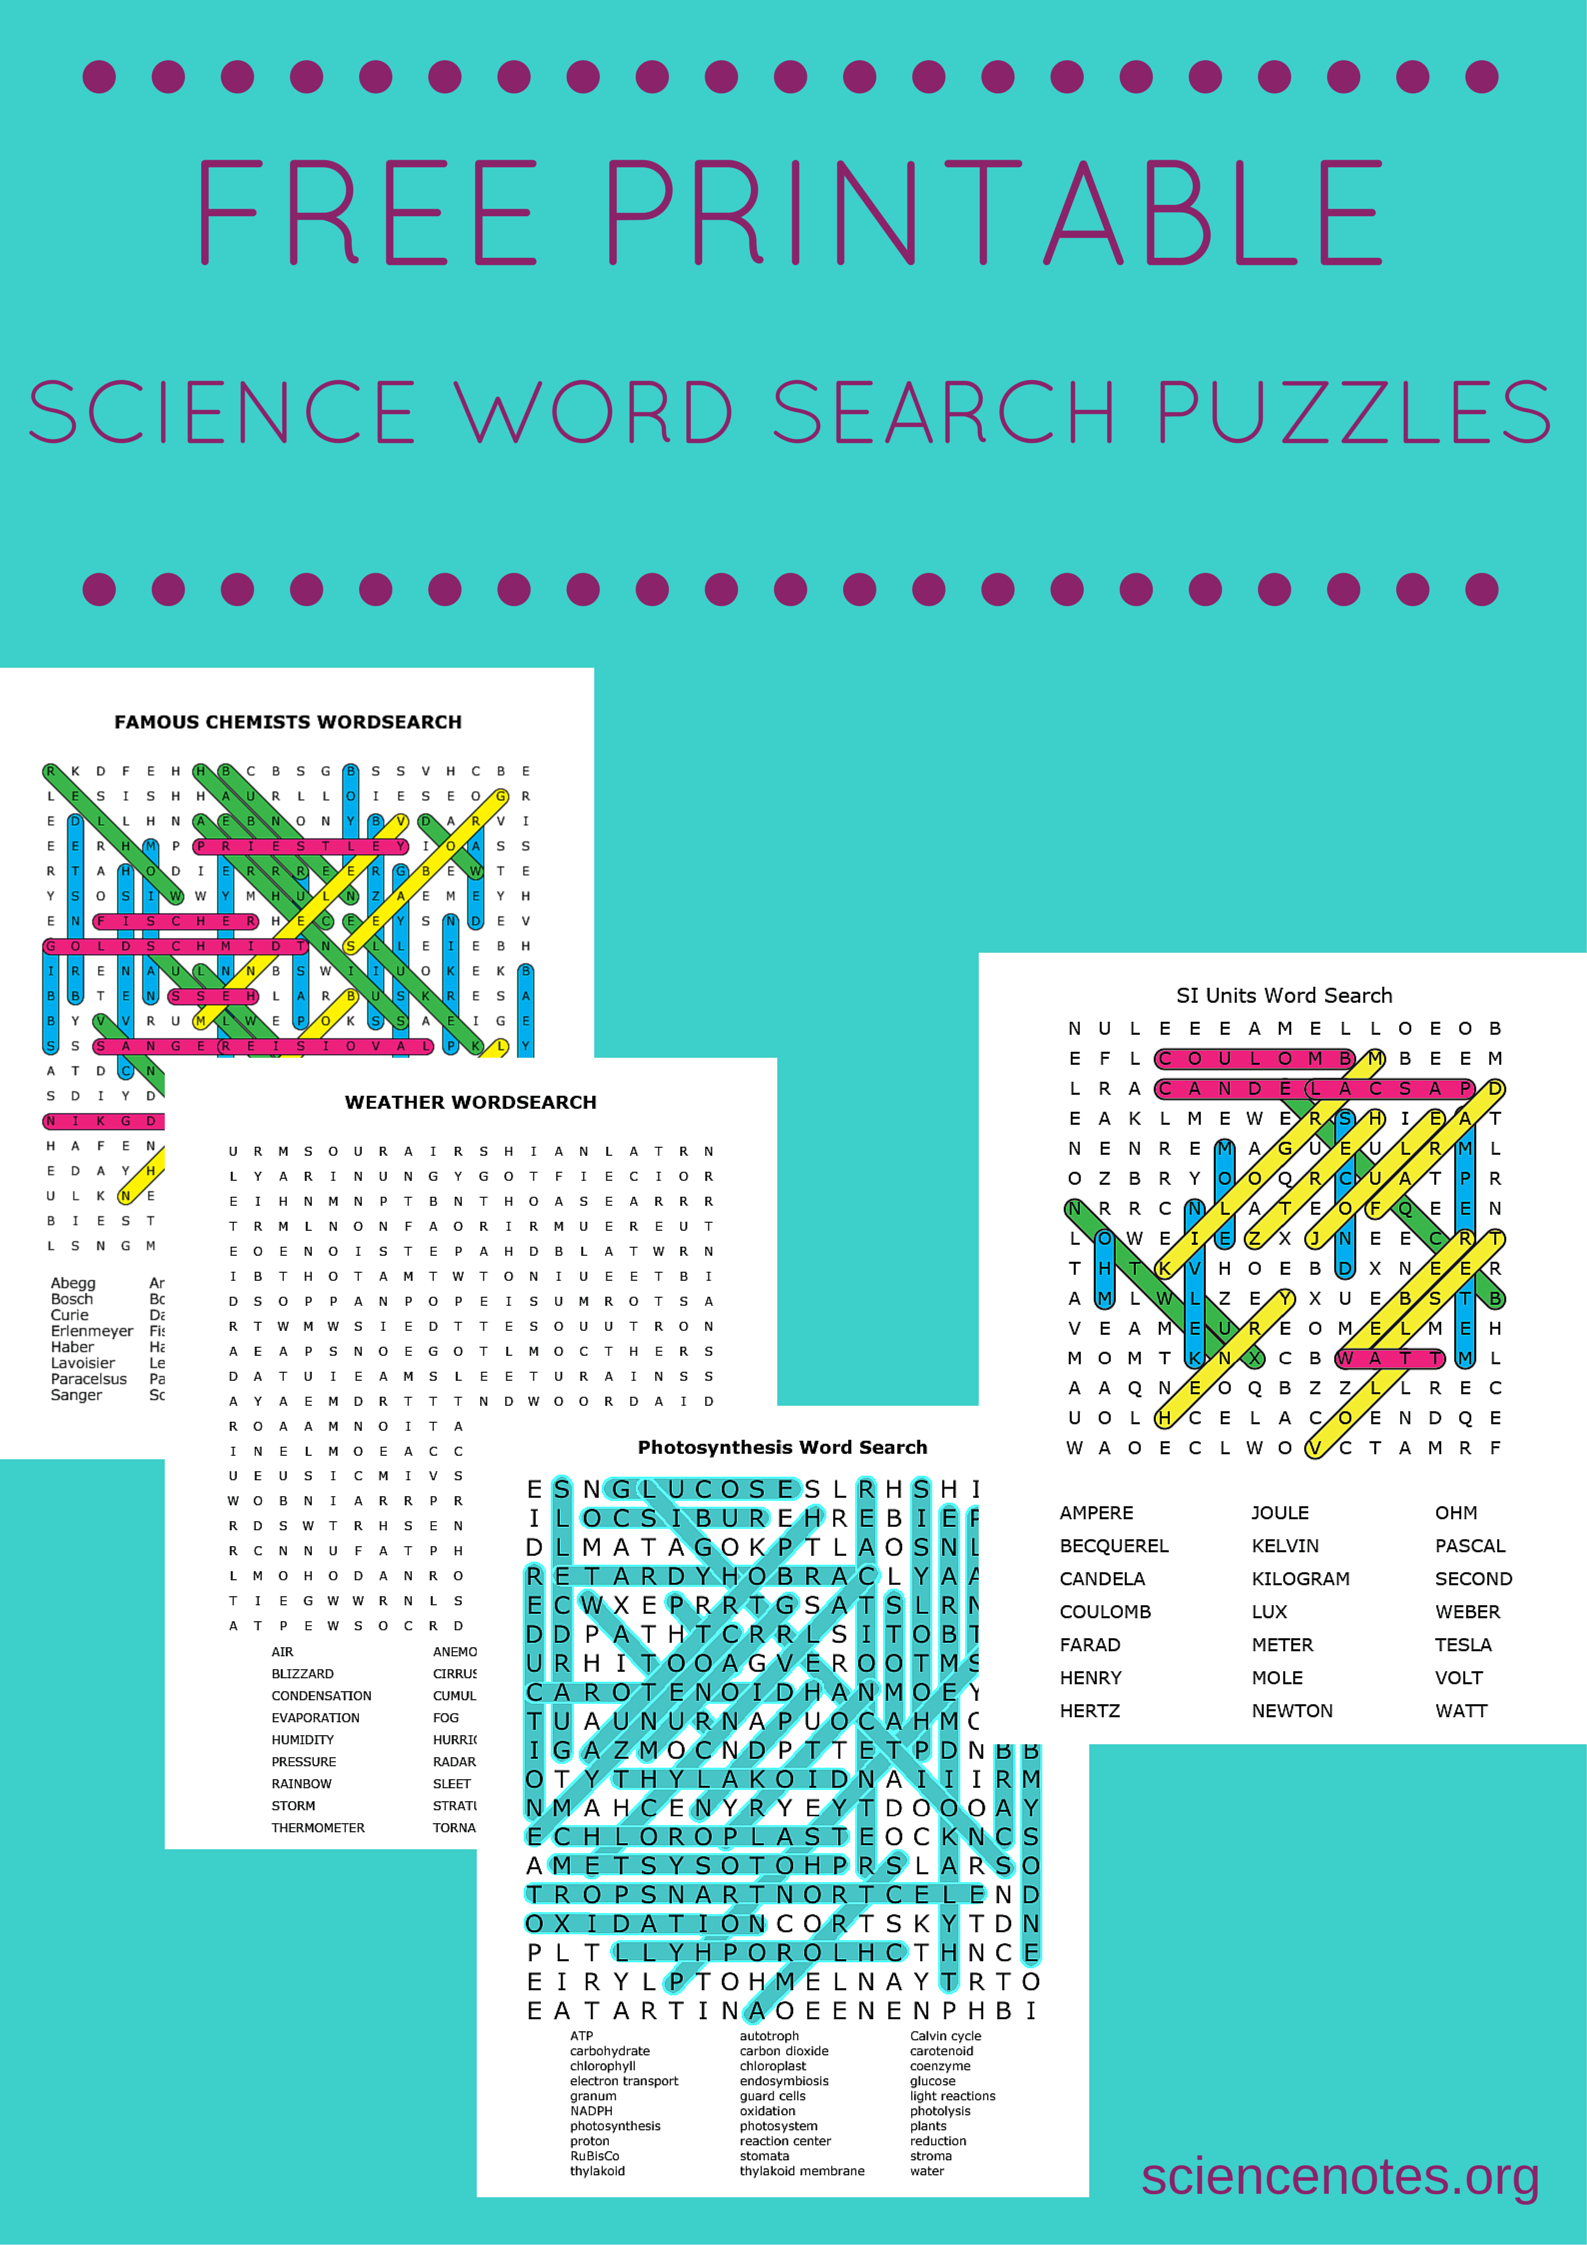 Free Printable Science Word Search Puzzles - Printable Energy Puzzle